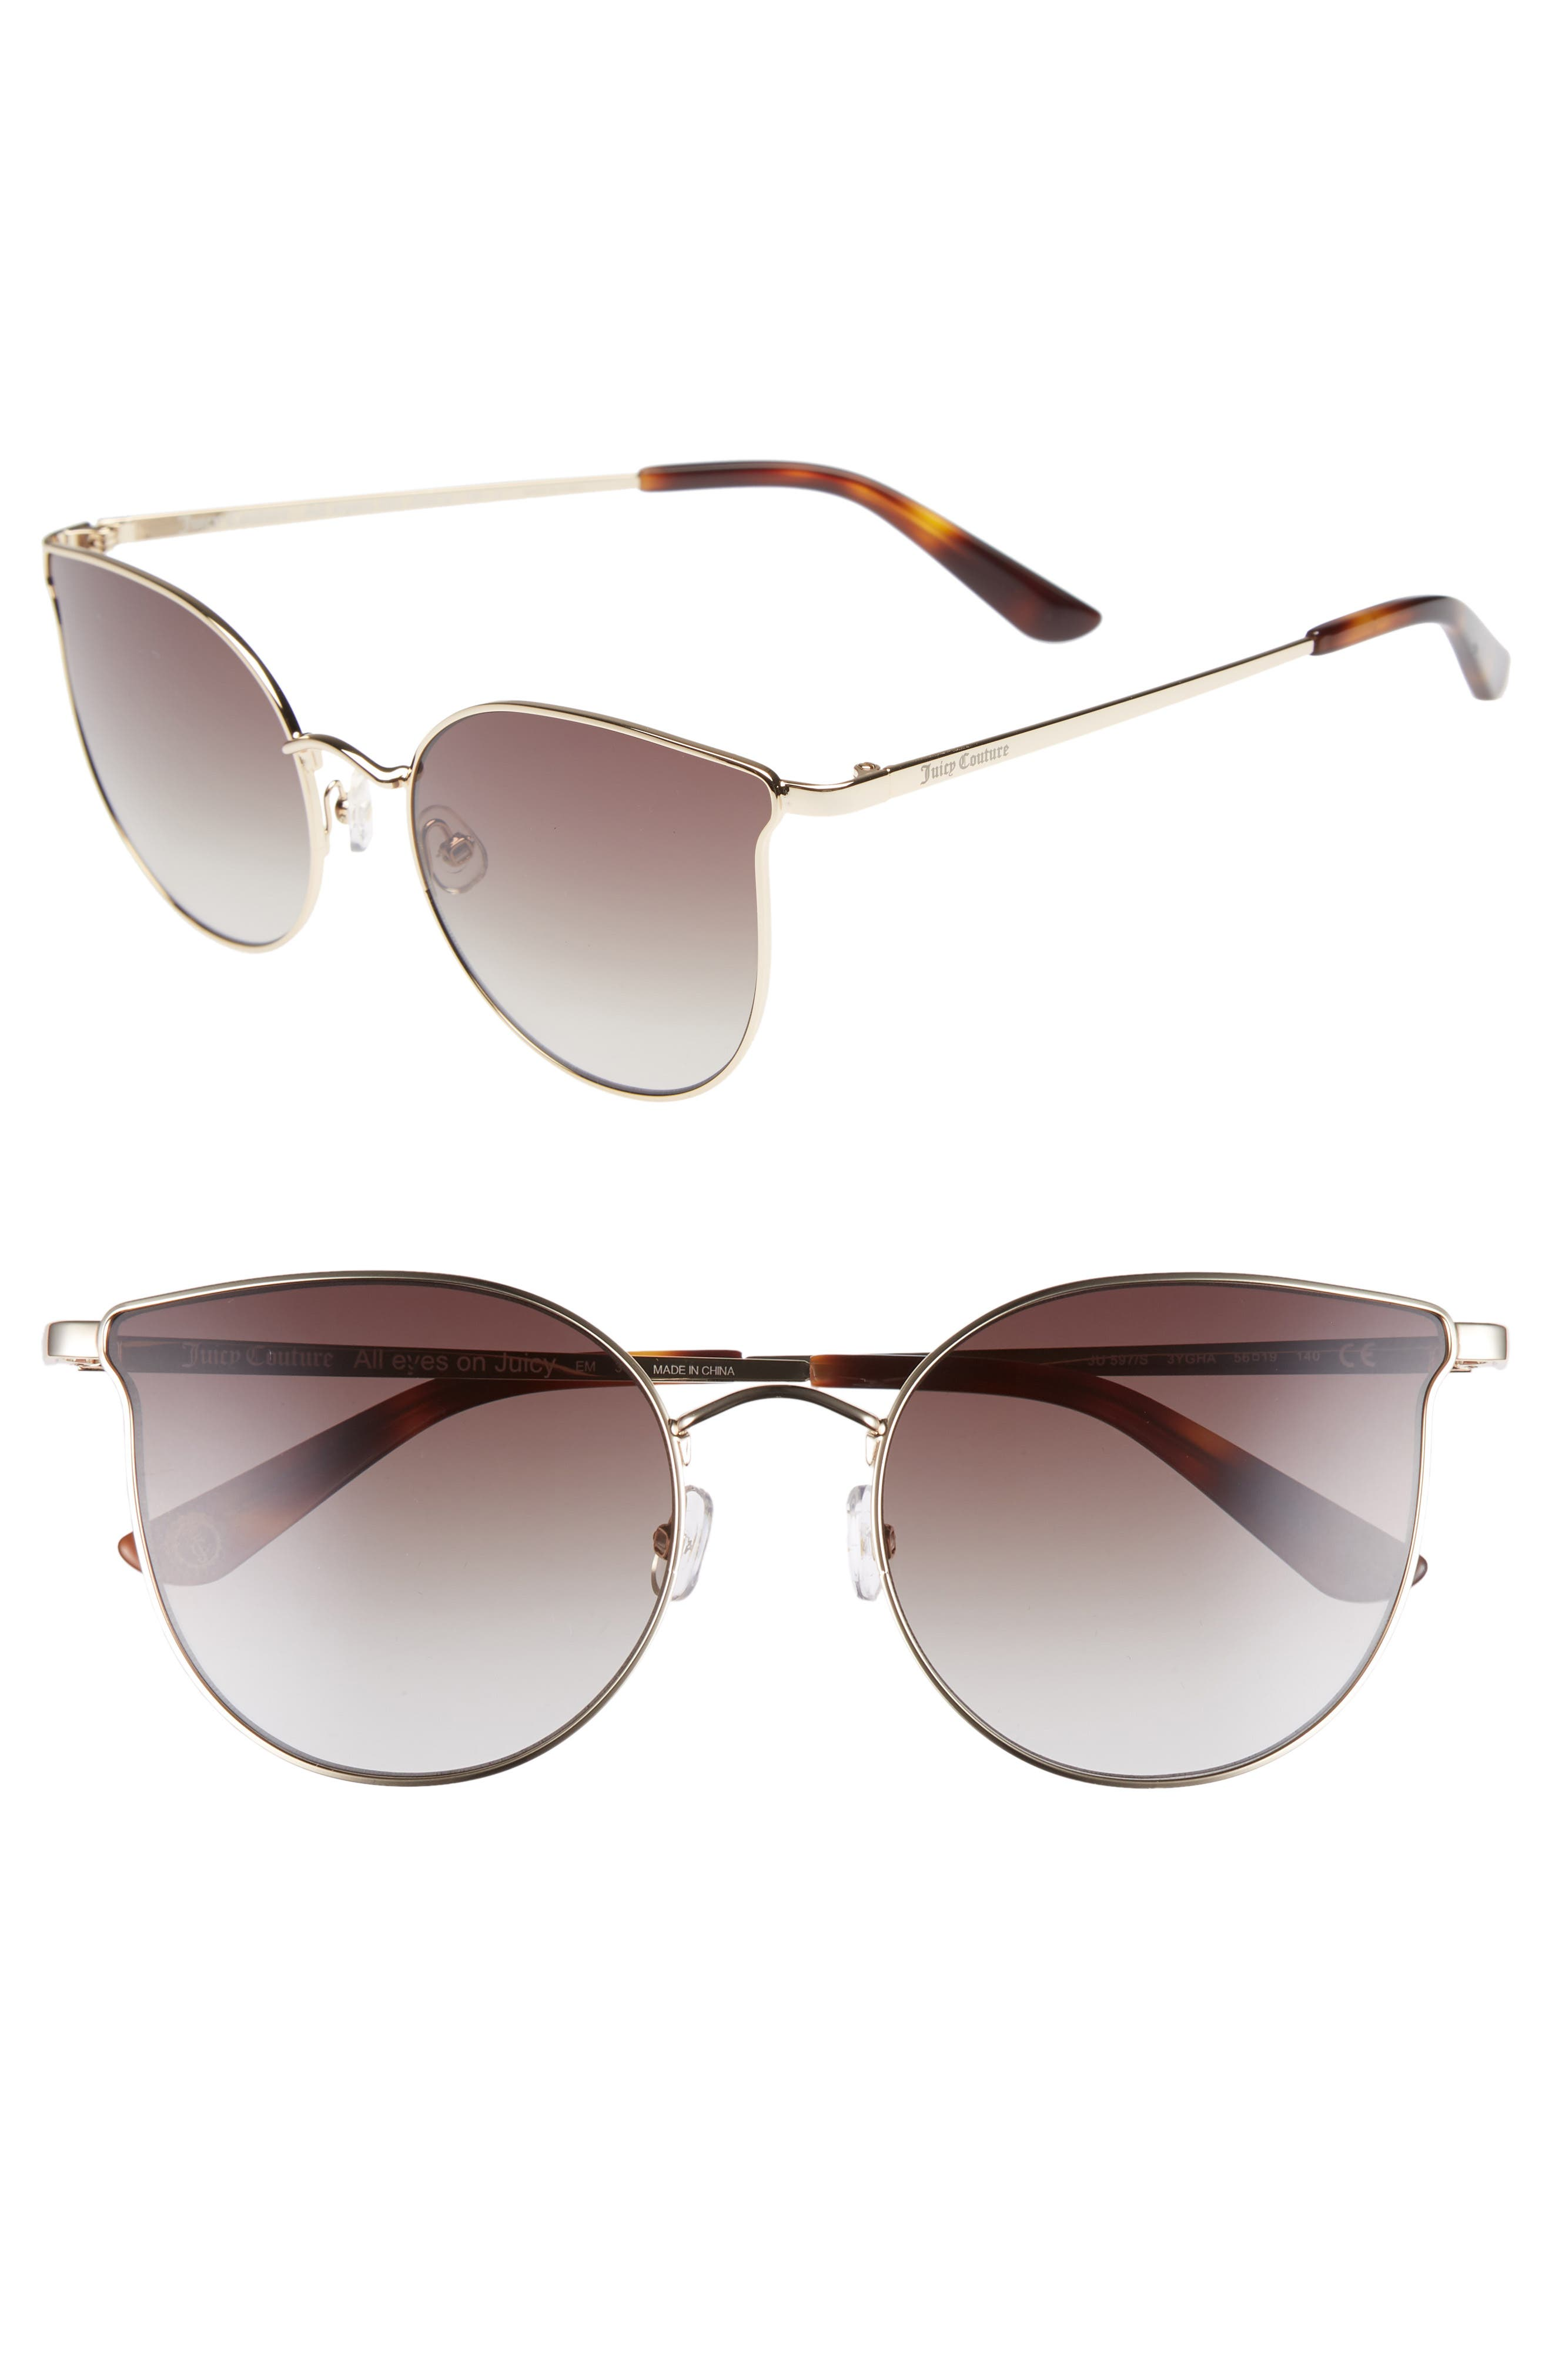 JUICY COUTURE 56MM METAL CAT EYE SUNGLASSES - LIGHT GOLD